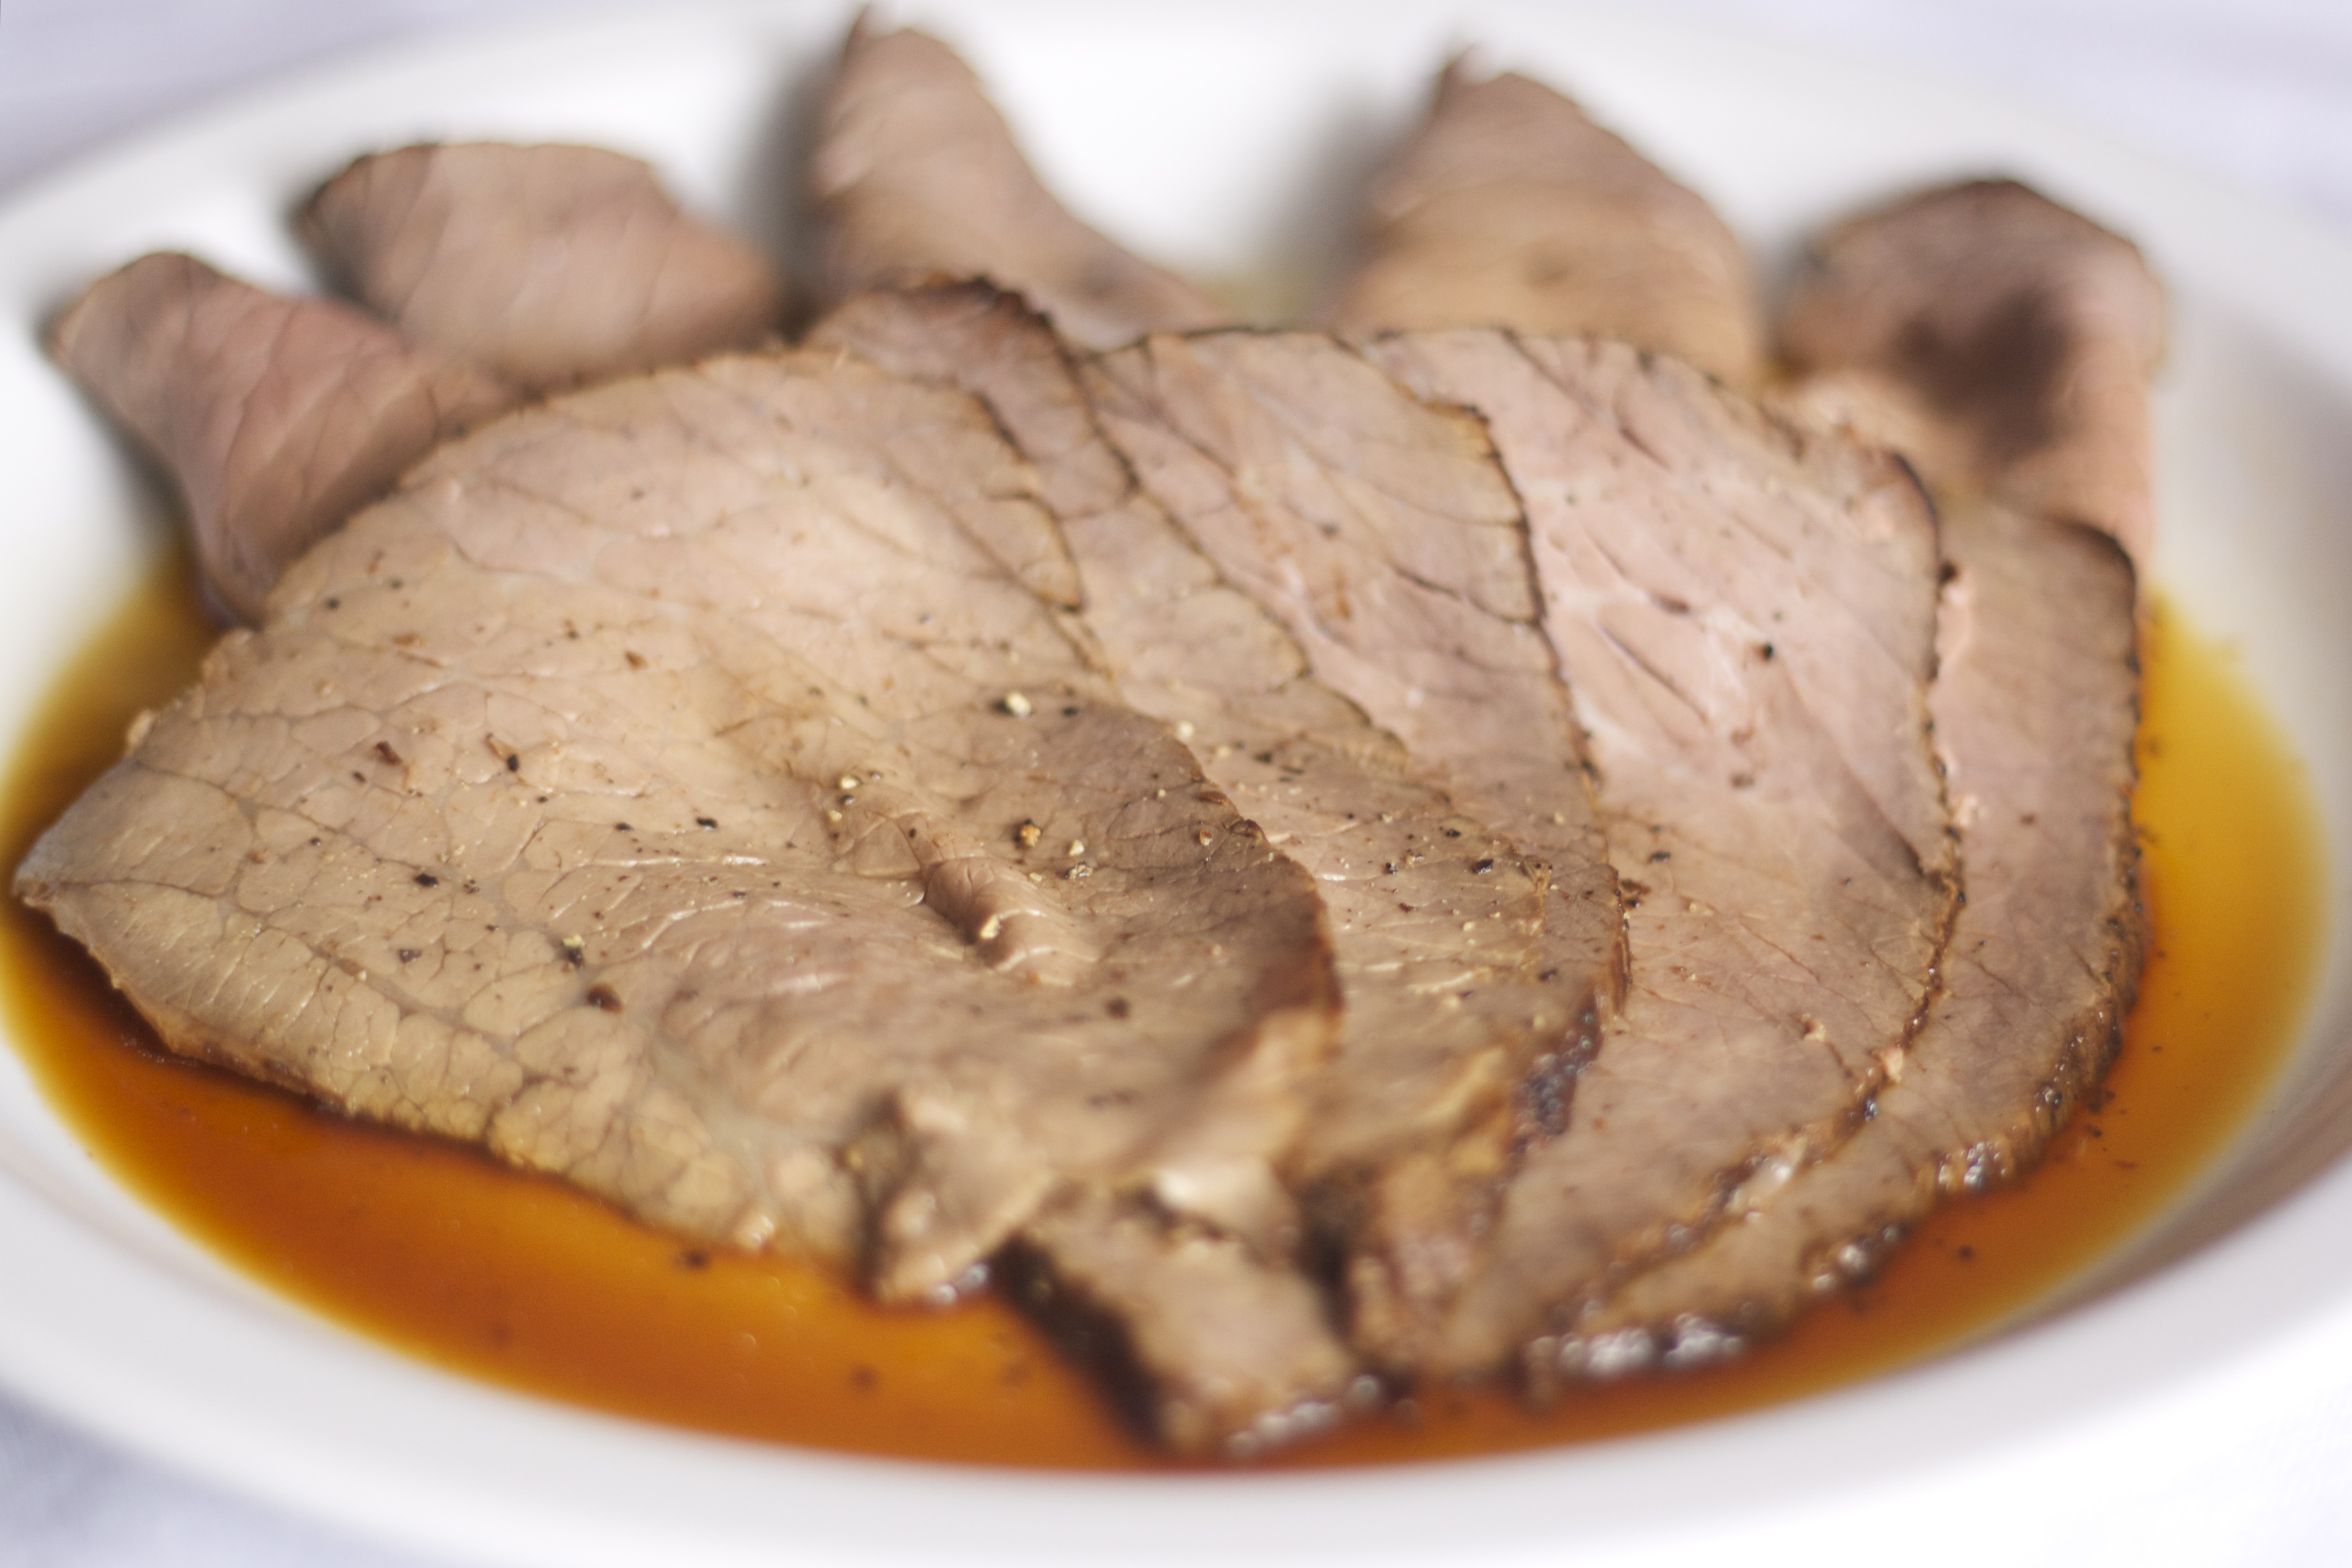 GAPS diet legal roast beef recipe sliced, on plate with pan drippings.